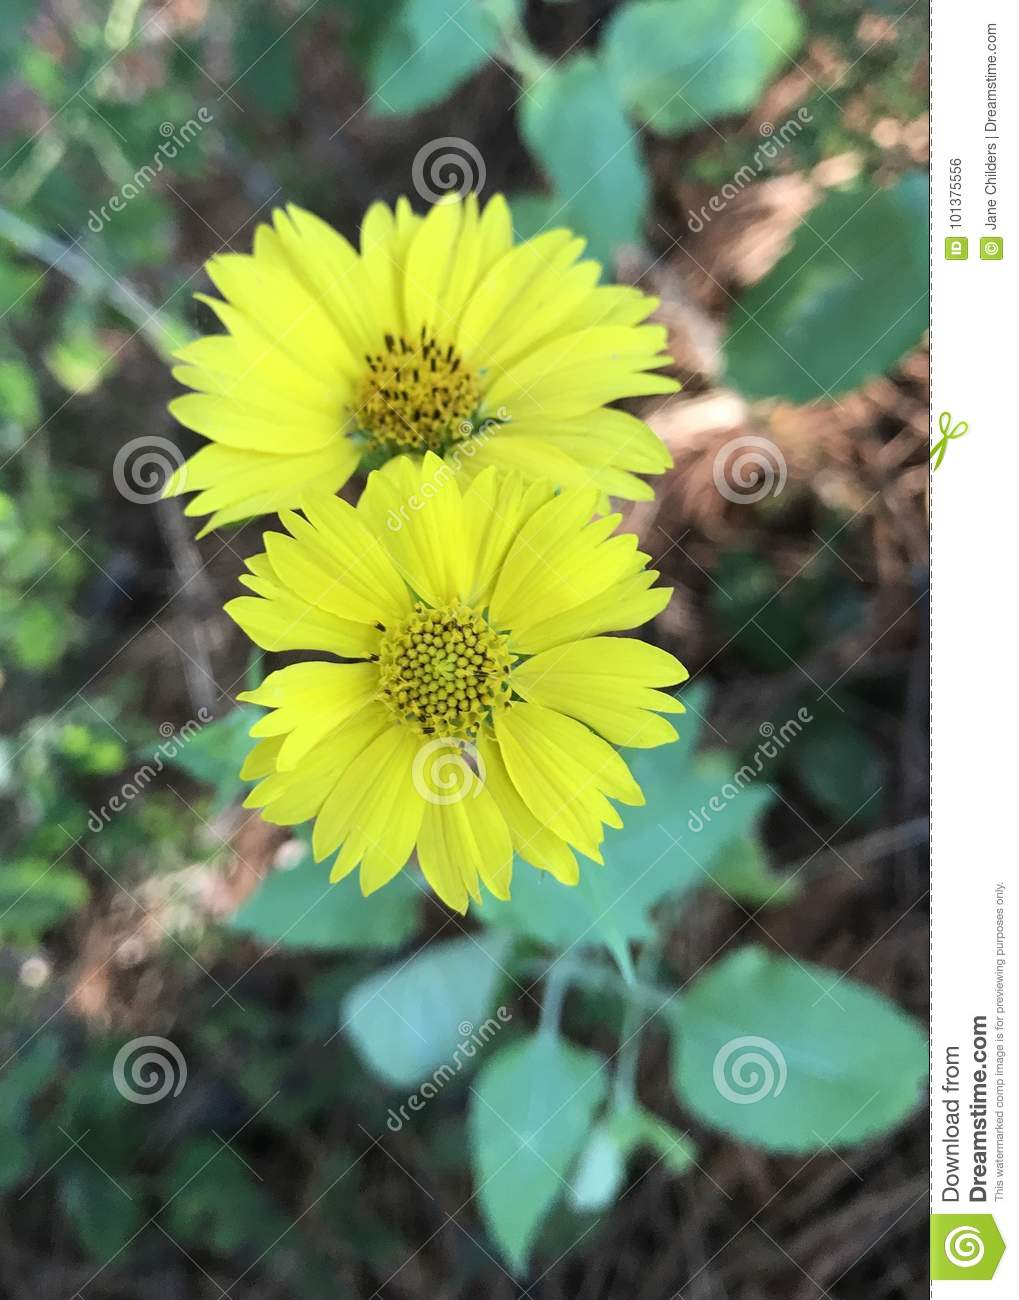 Leafcup Flower Stock Photo Image Of Flowers Leafcup 101375556